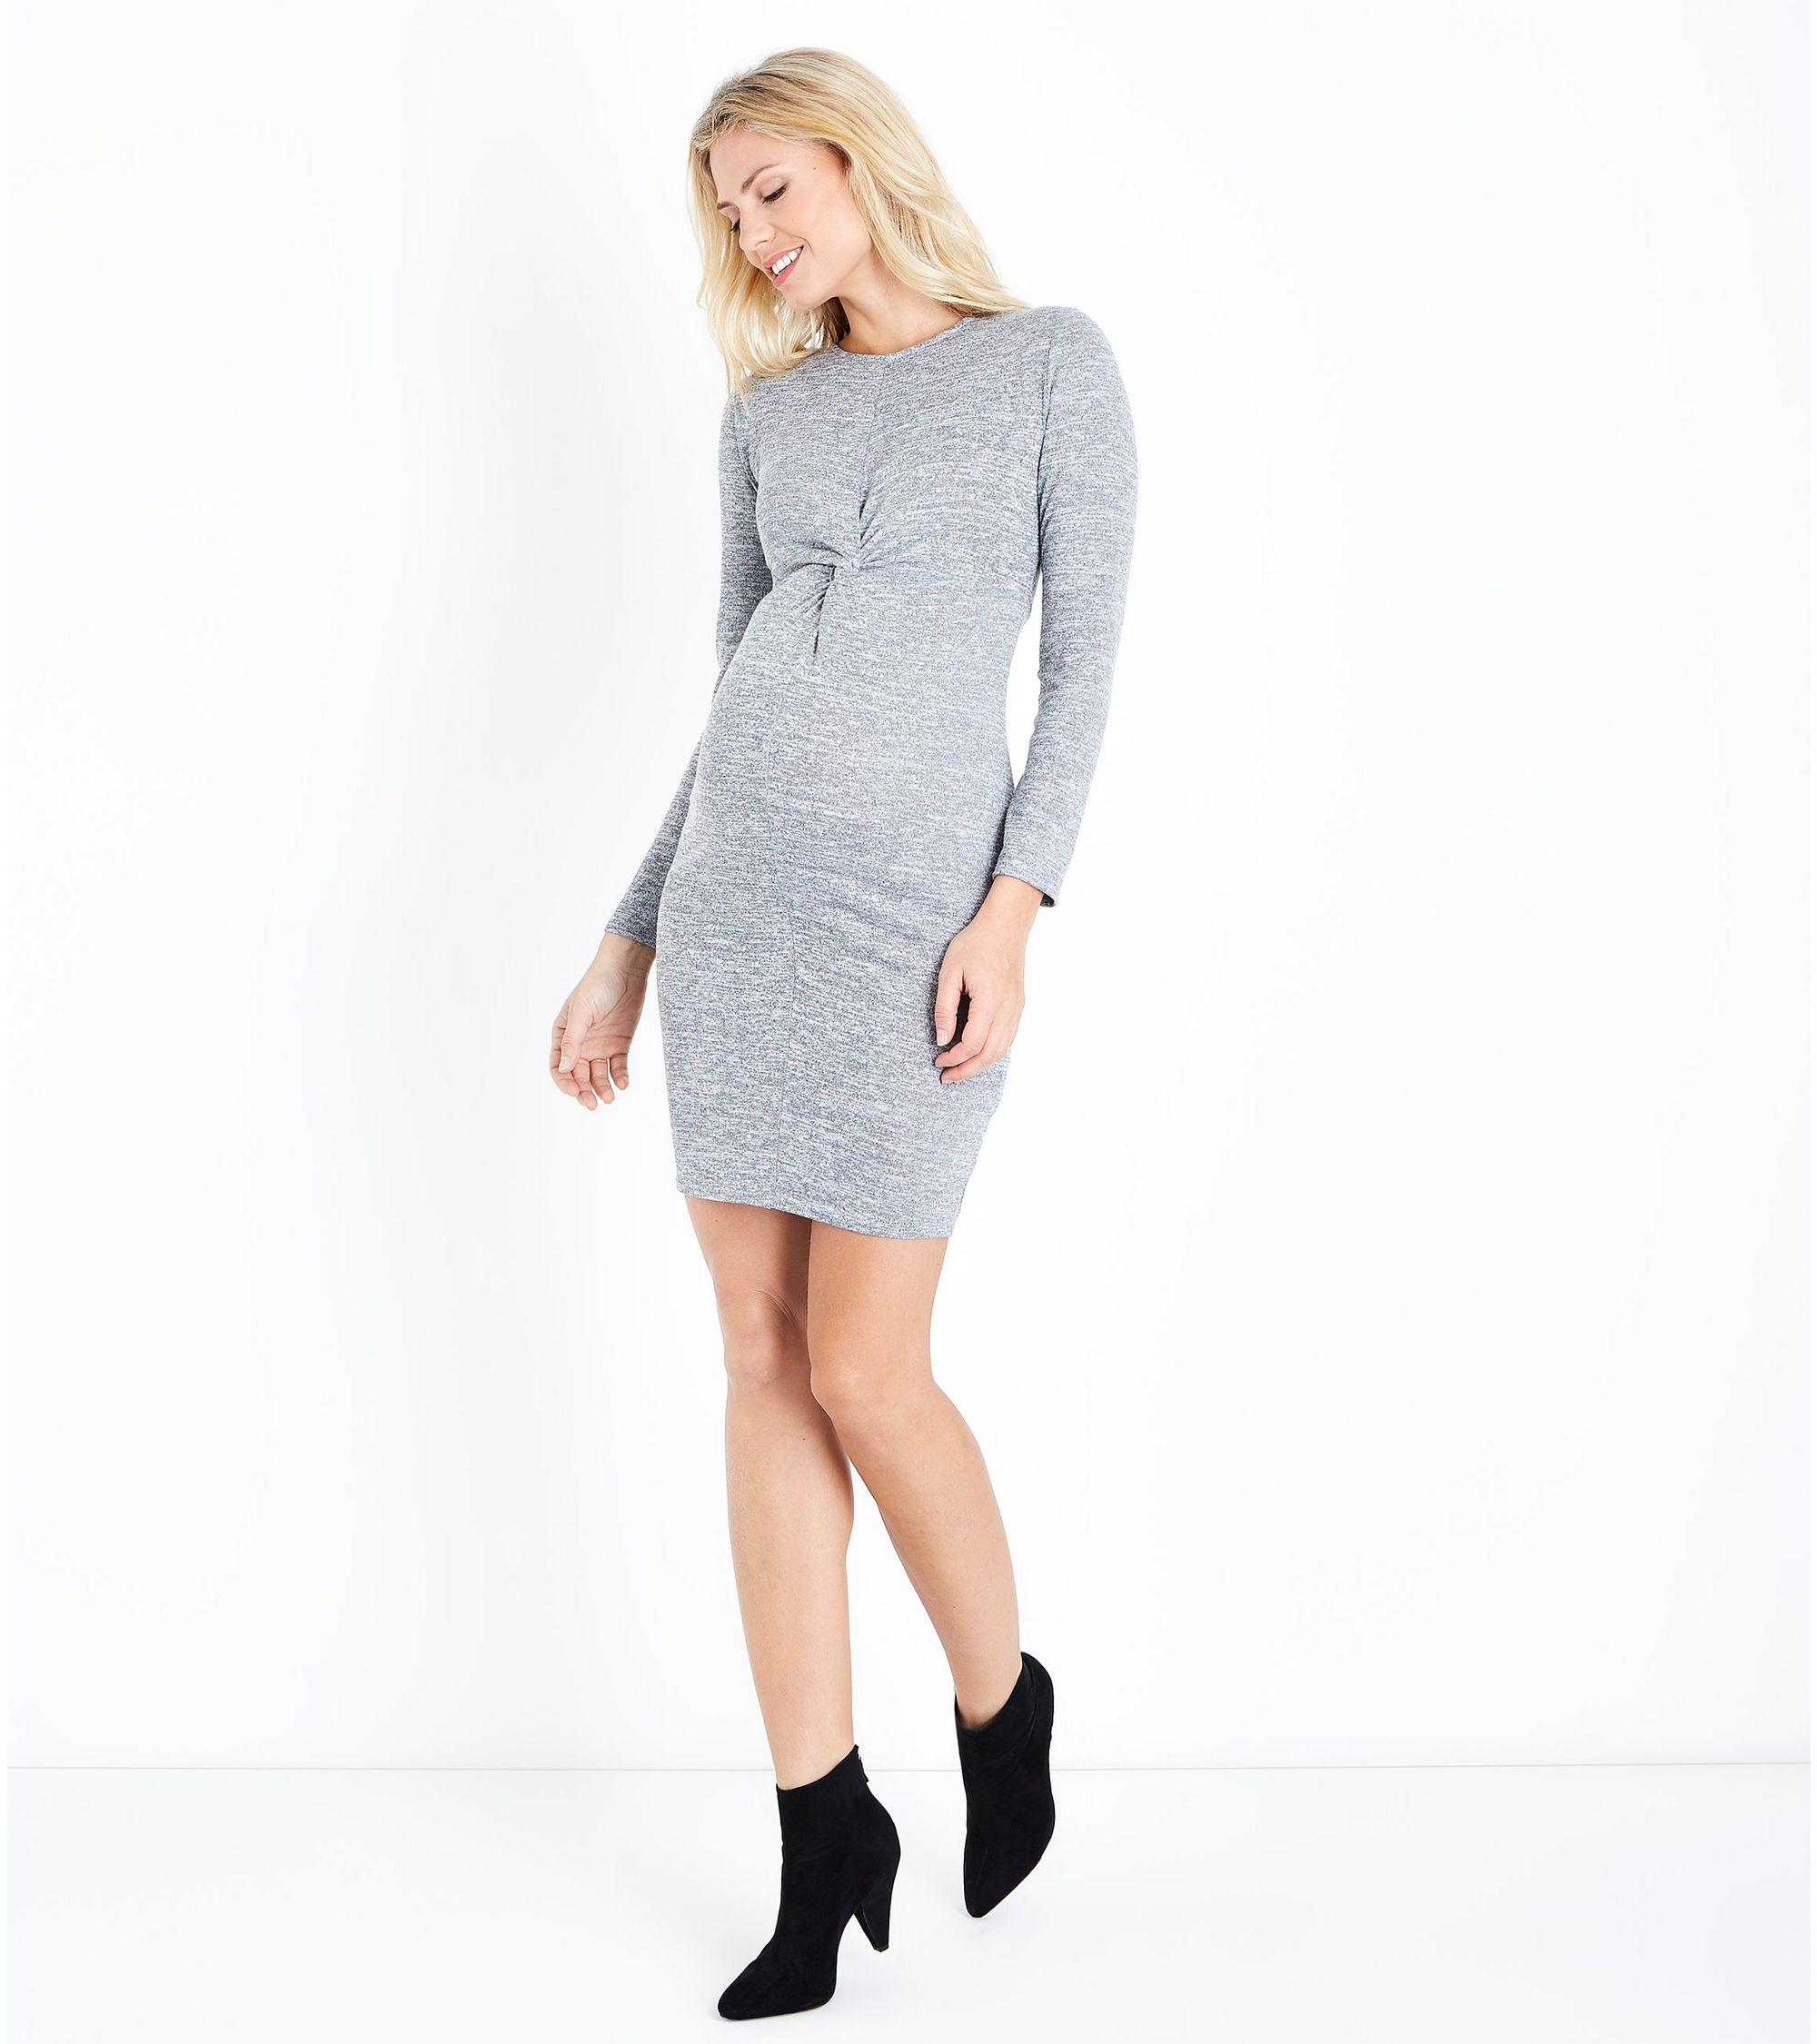 433d4cb401009 New Look Maternity Grey Fine Knit Twist Front Bodycon Dress at ...